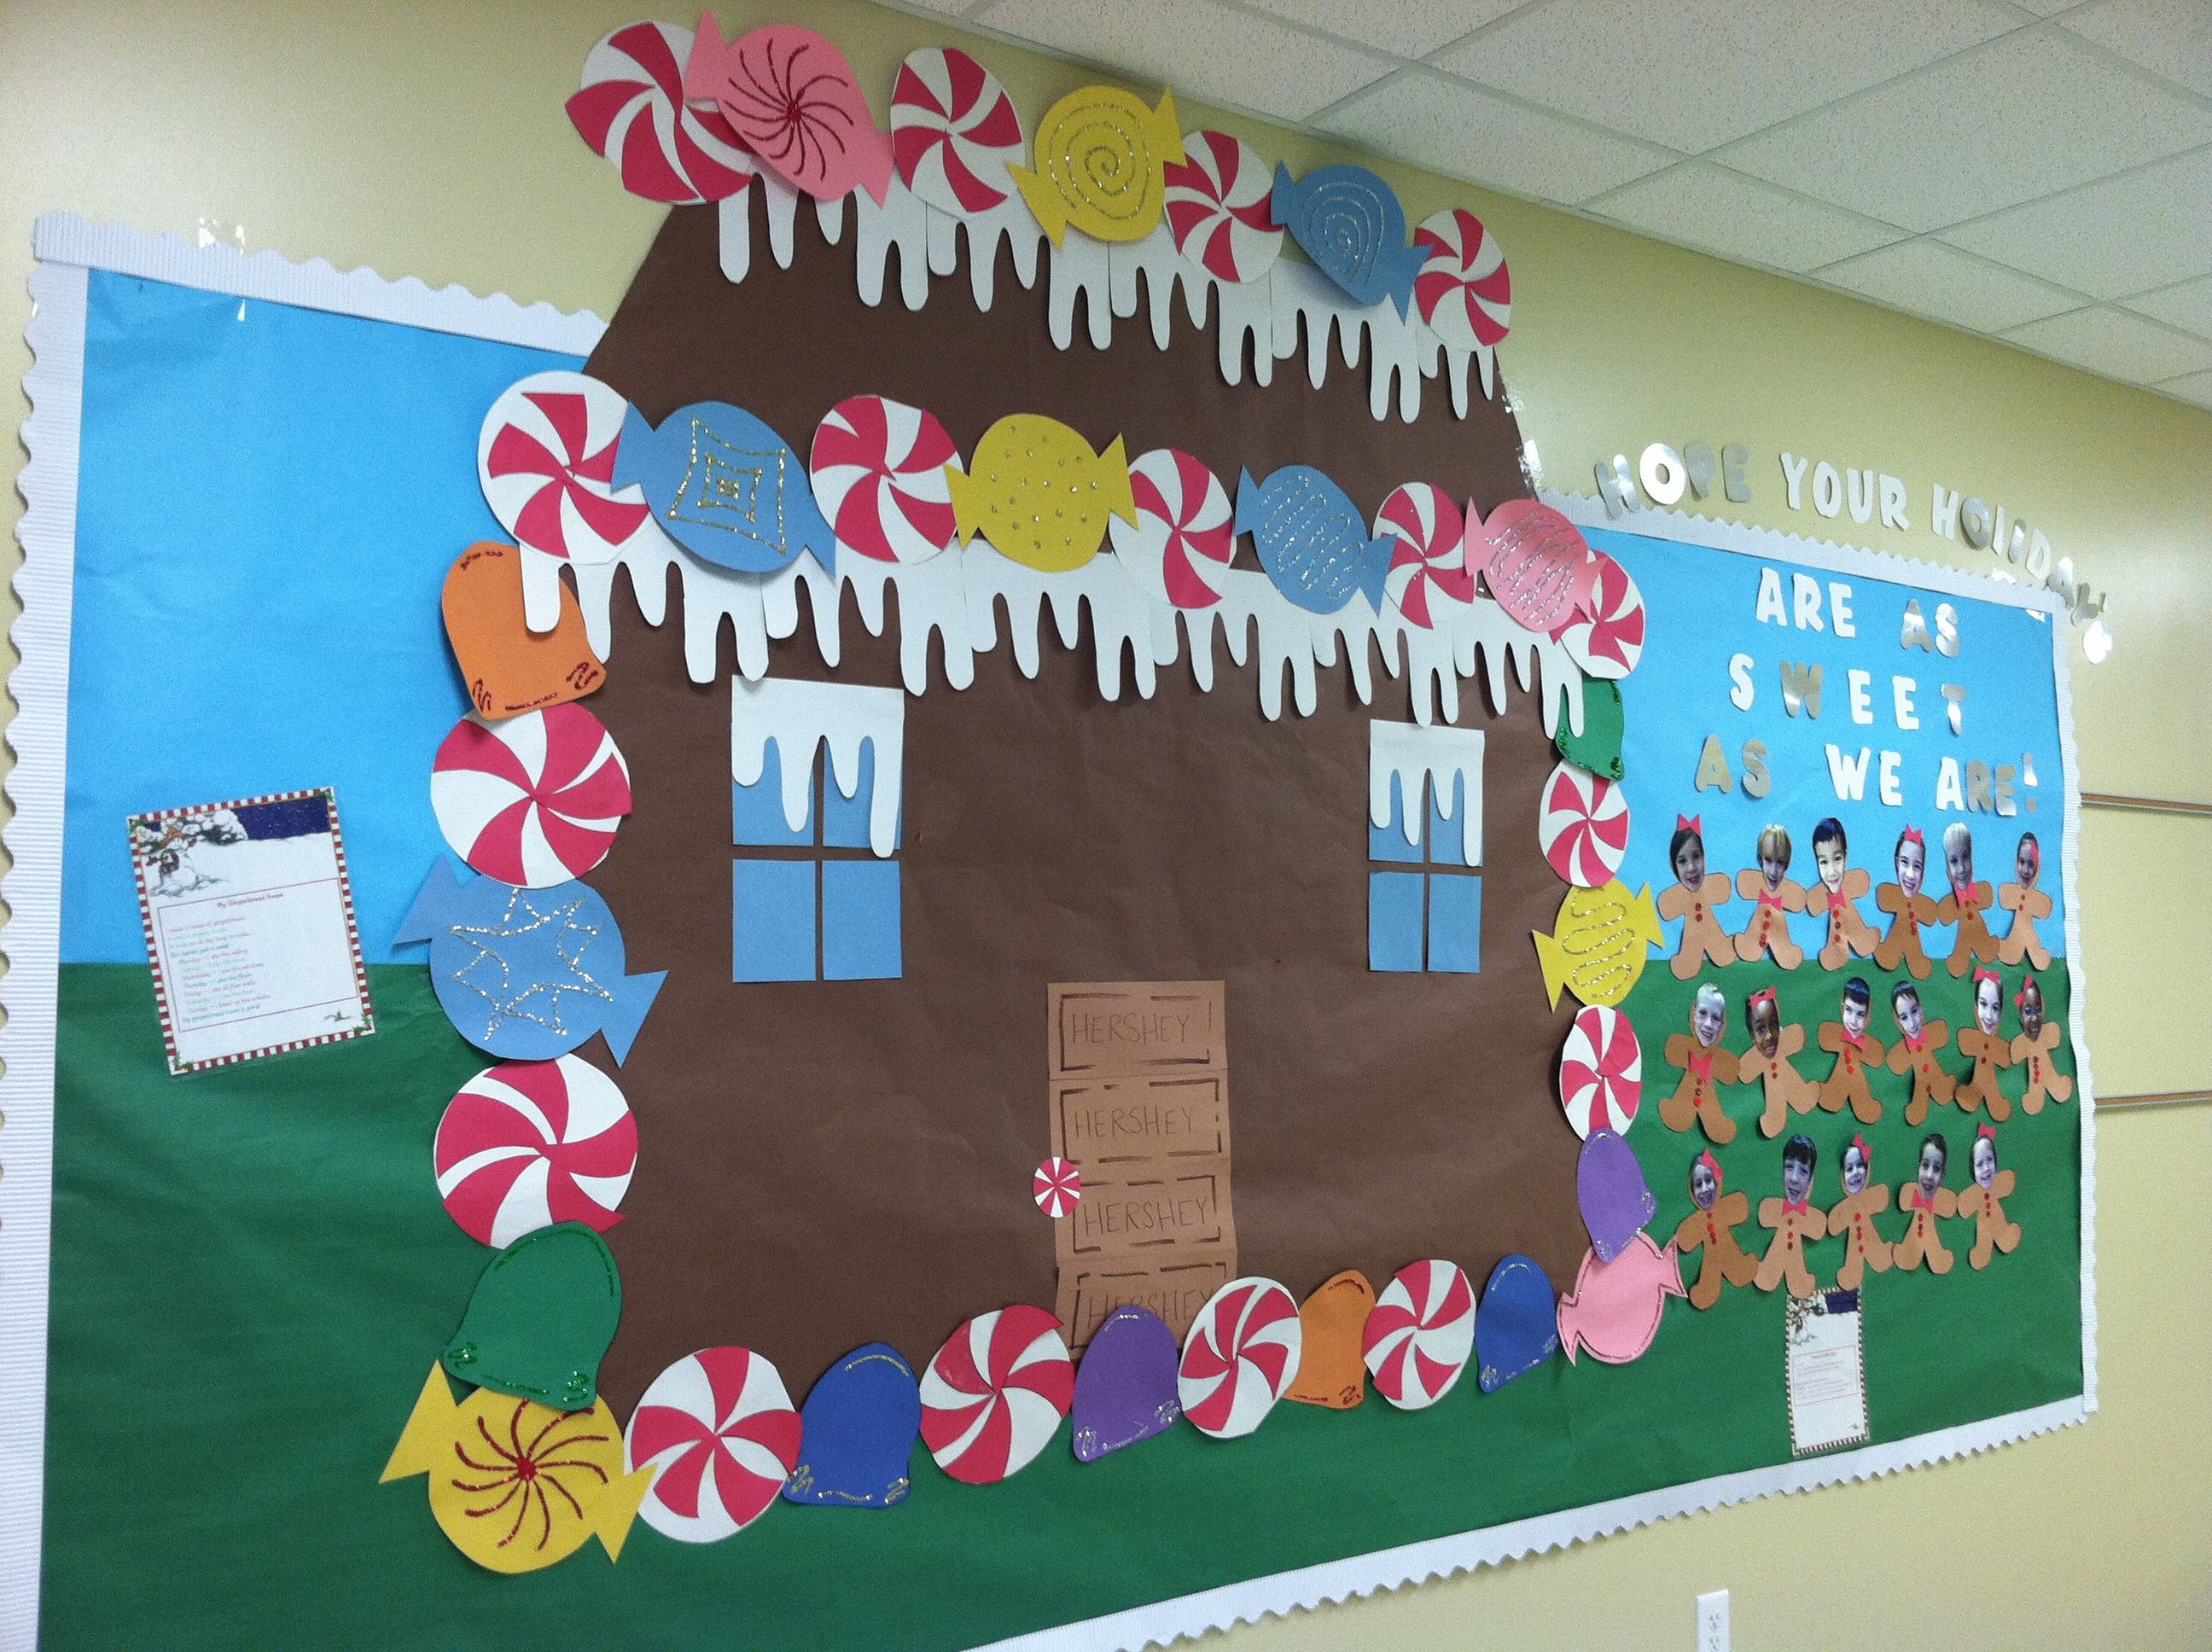 Mrs moseley 39 s gingerbread house holiday gingerbread theme for Theme board ideas